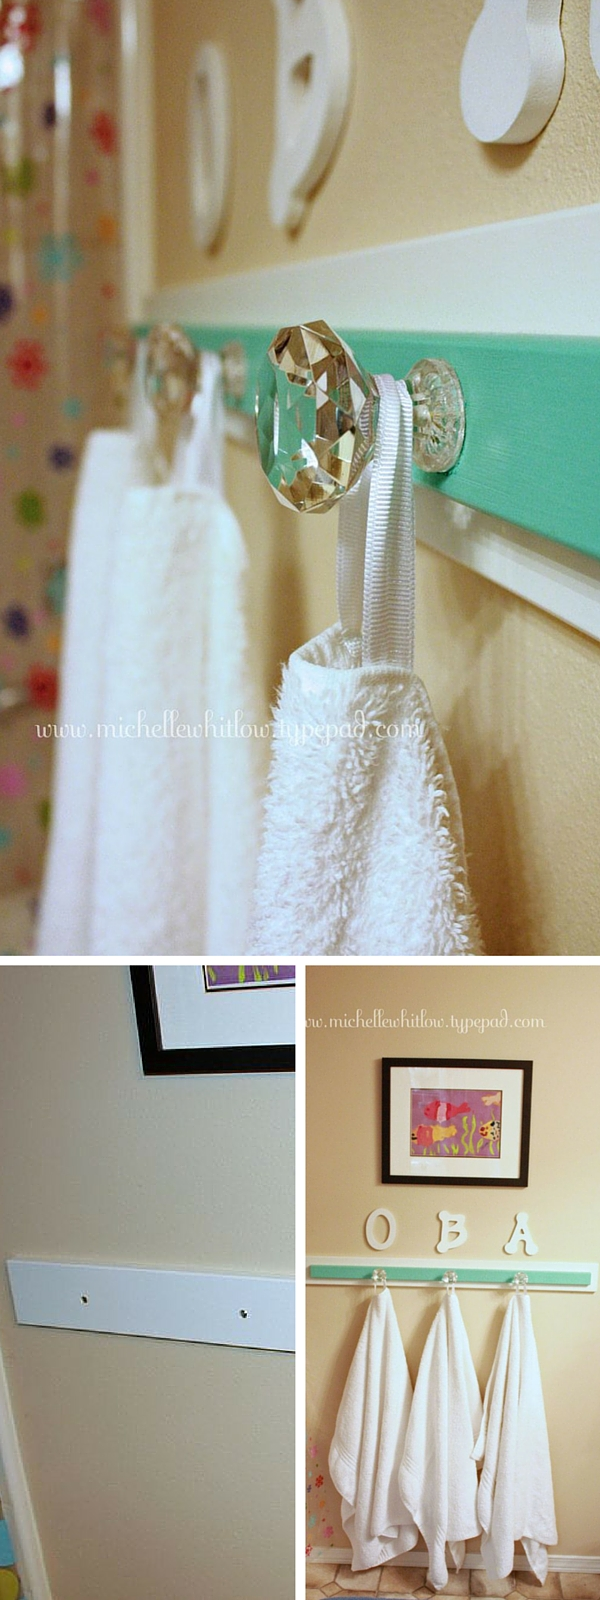 #DIY Vintage Towel Hooks #bathroomdecor